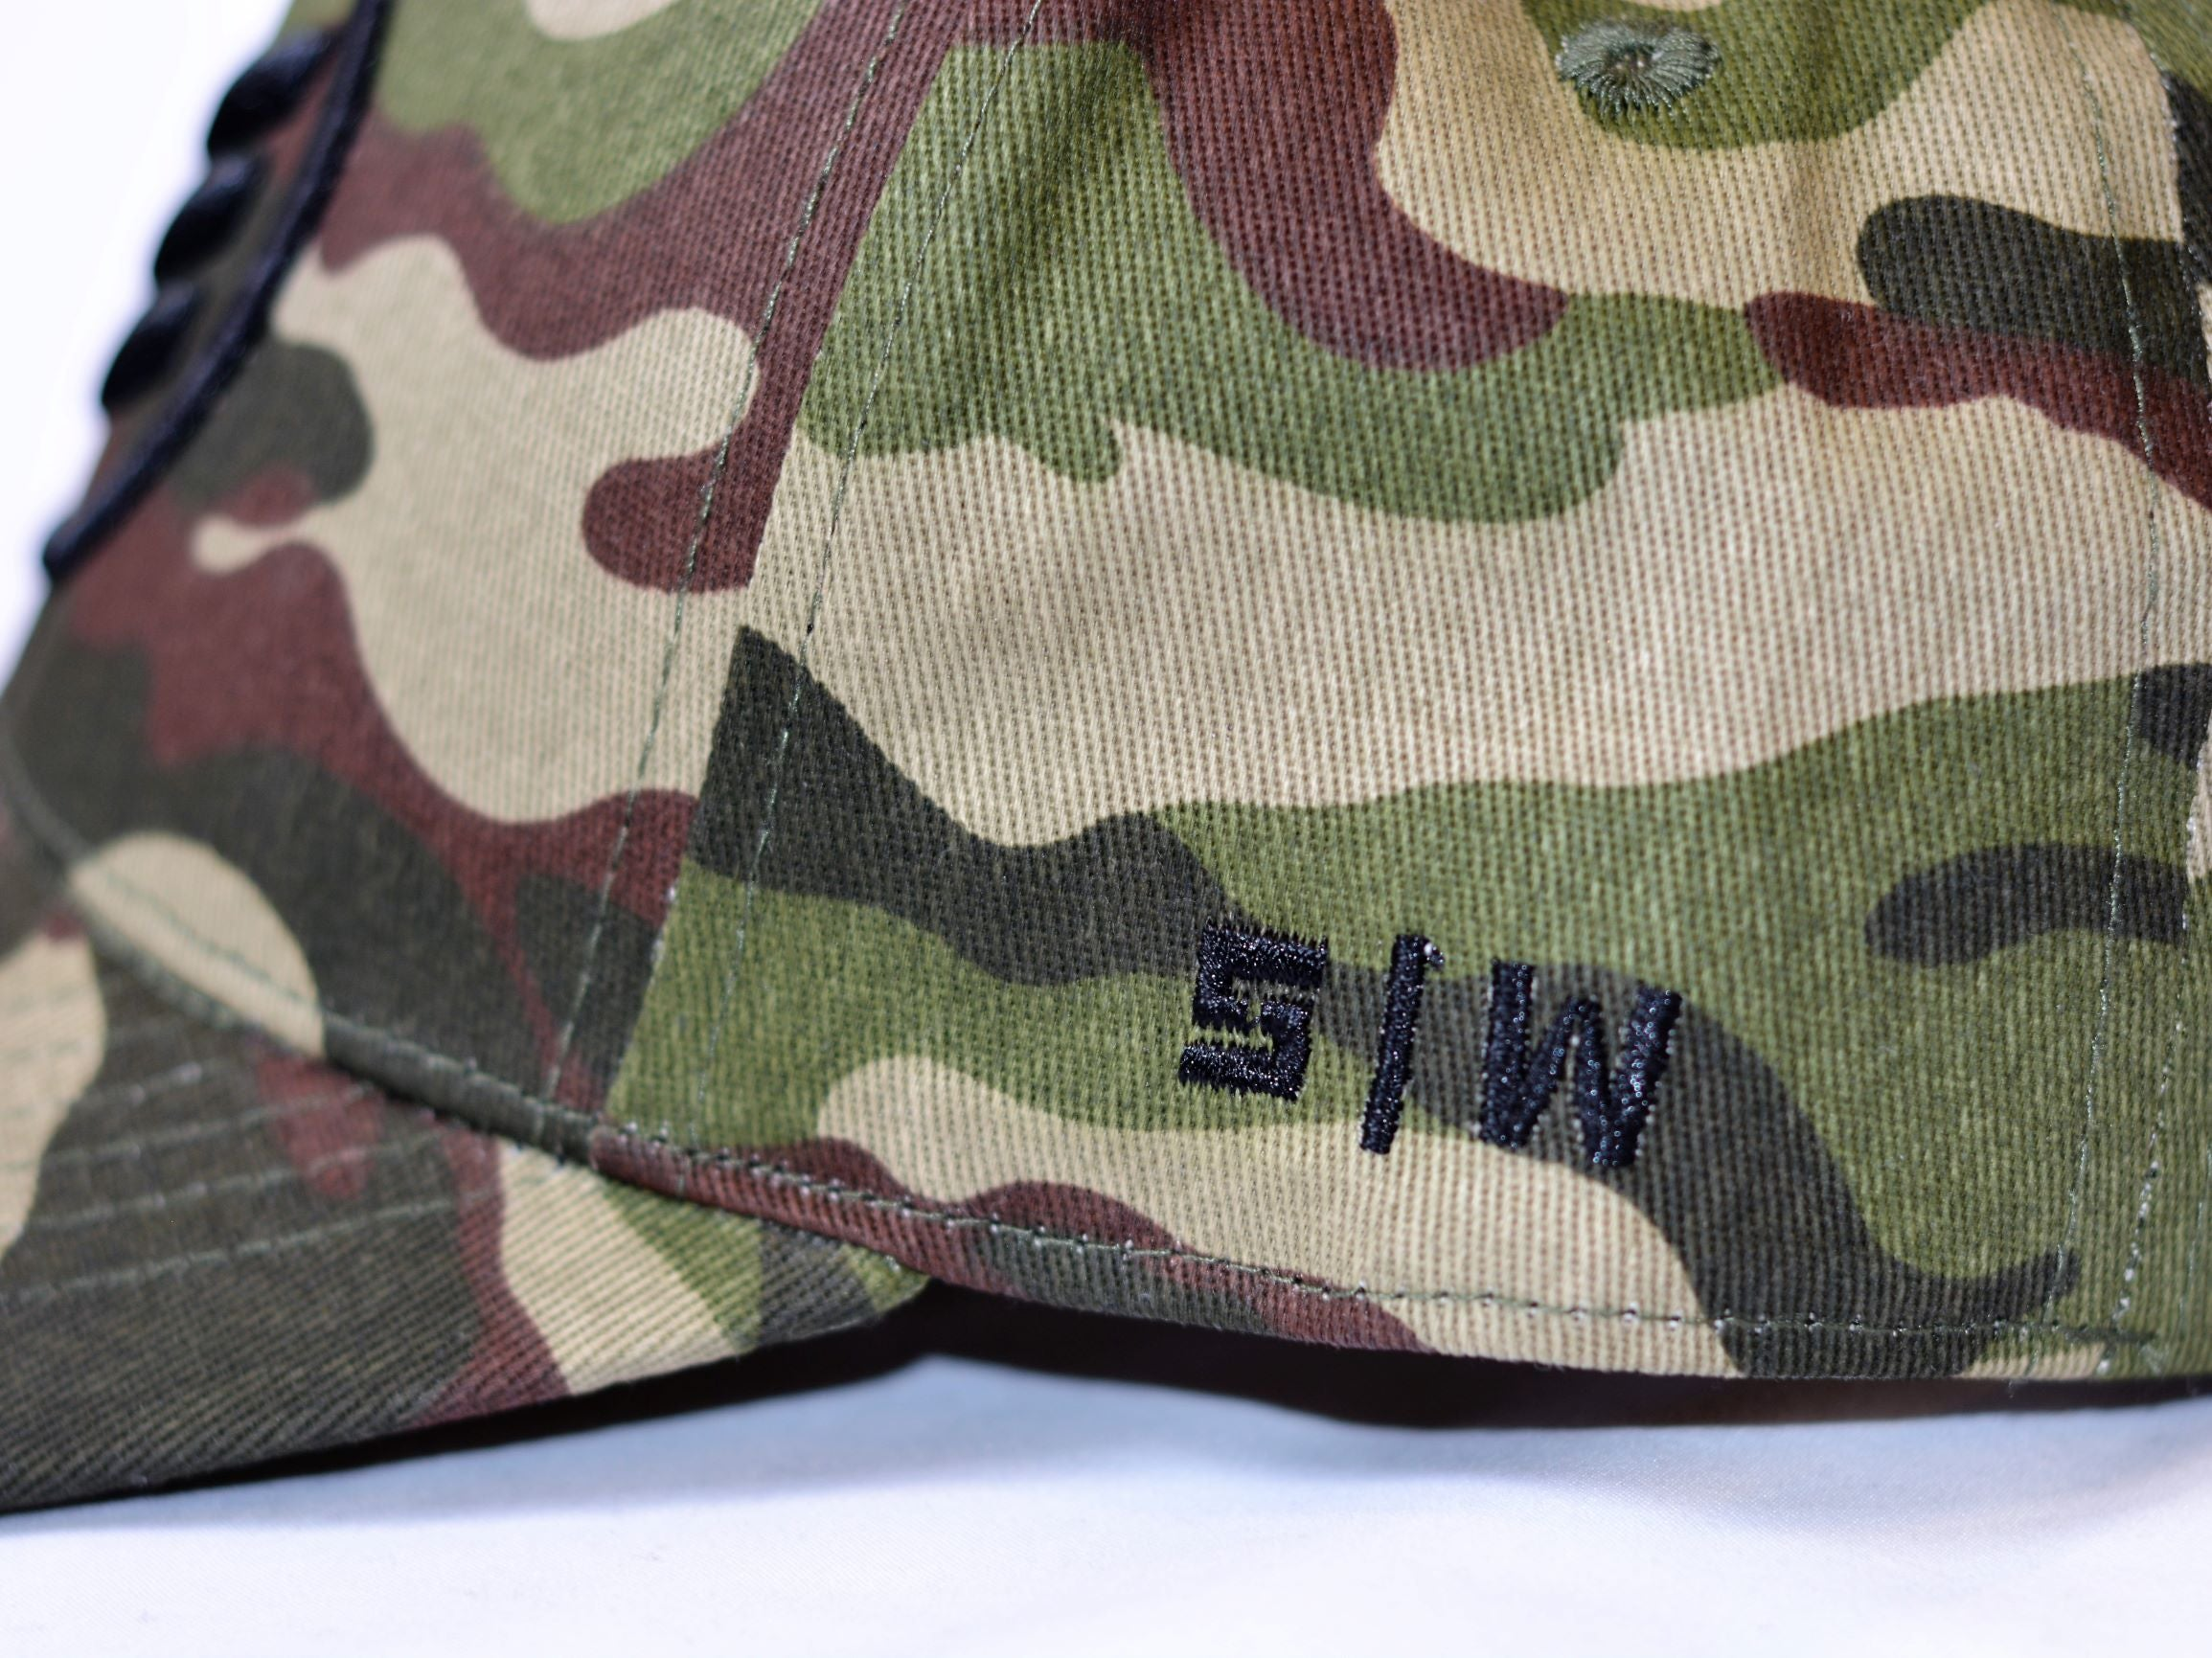 Original-A-Frame-Cap-Camo-Side-Shredded-Warfare